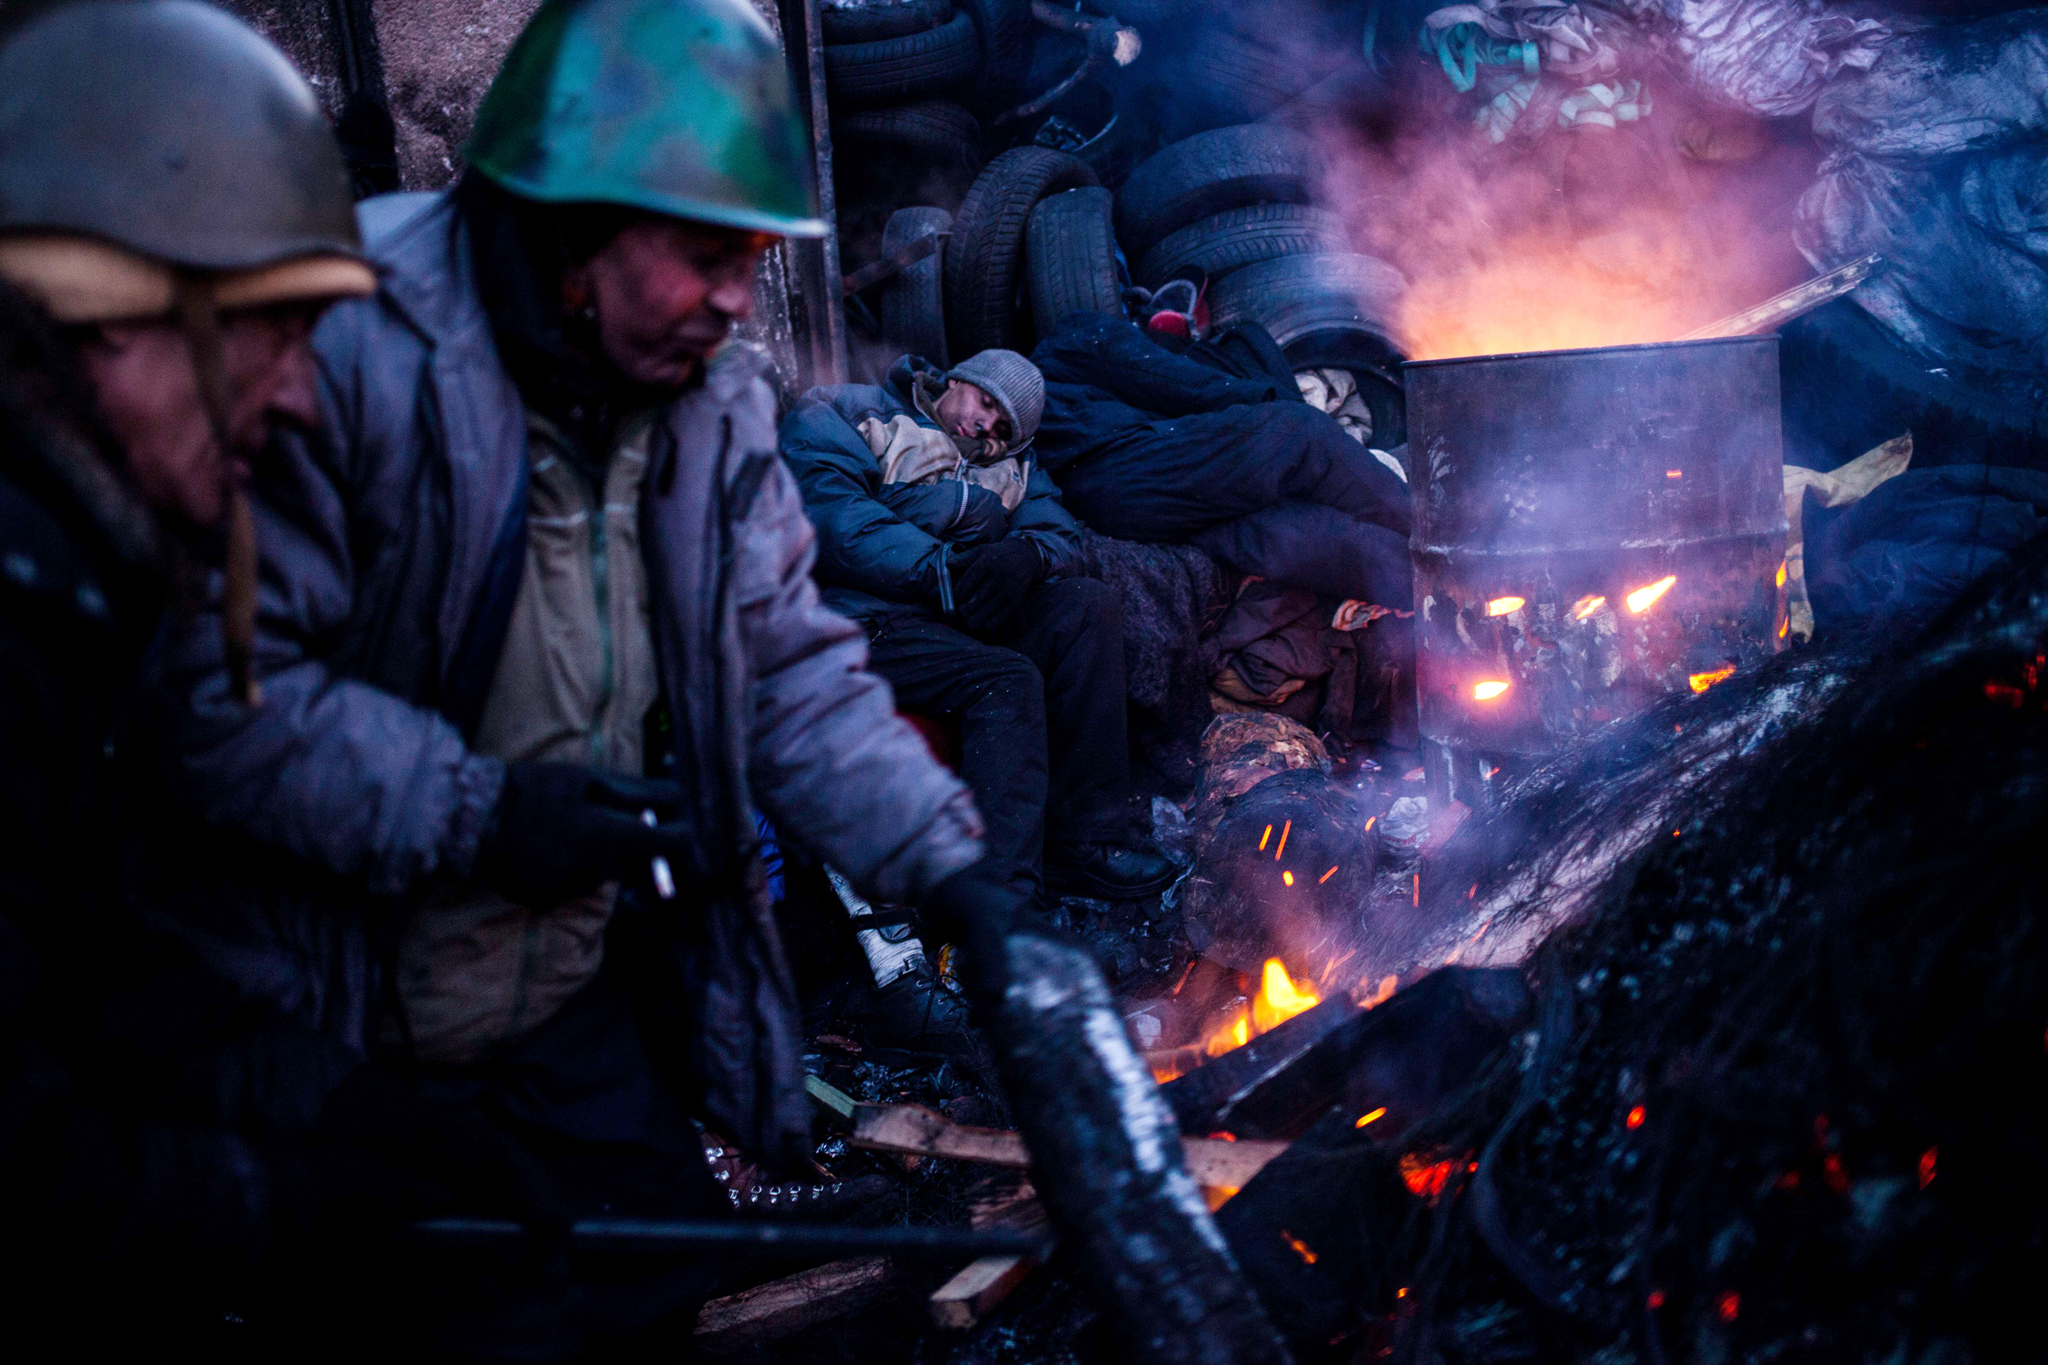 TOPSHOTS Anti-government protesters warm themselves at a fire  near a barricade early morning in Kiev on January 31, 2014. A bill passed by Ukraine's parliament to amnesty arrested activists gives protesters a 15-day deadline to leave occupied streets and administrative buildings otherwise it will not be implemented, according to the text published the day before.